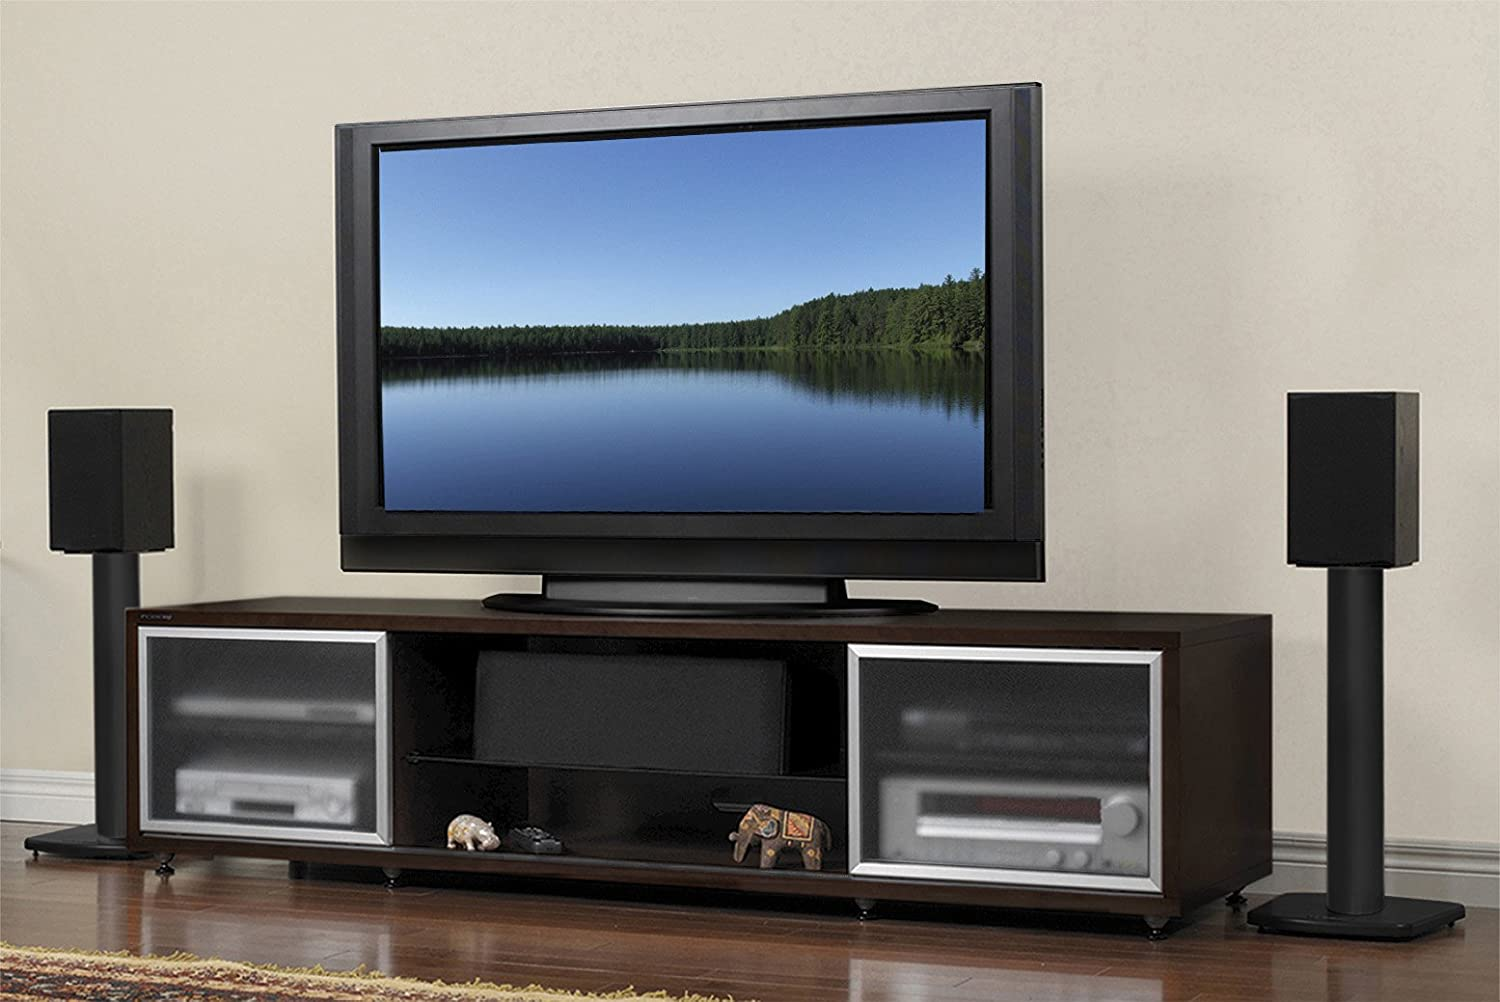 Amazoncom PLATEAU SRV 75 BBS Wood 75 TV Stand Black Oak finish